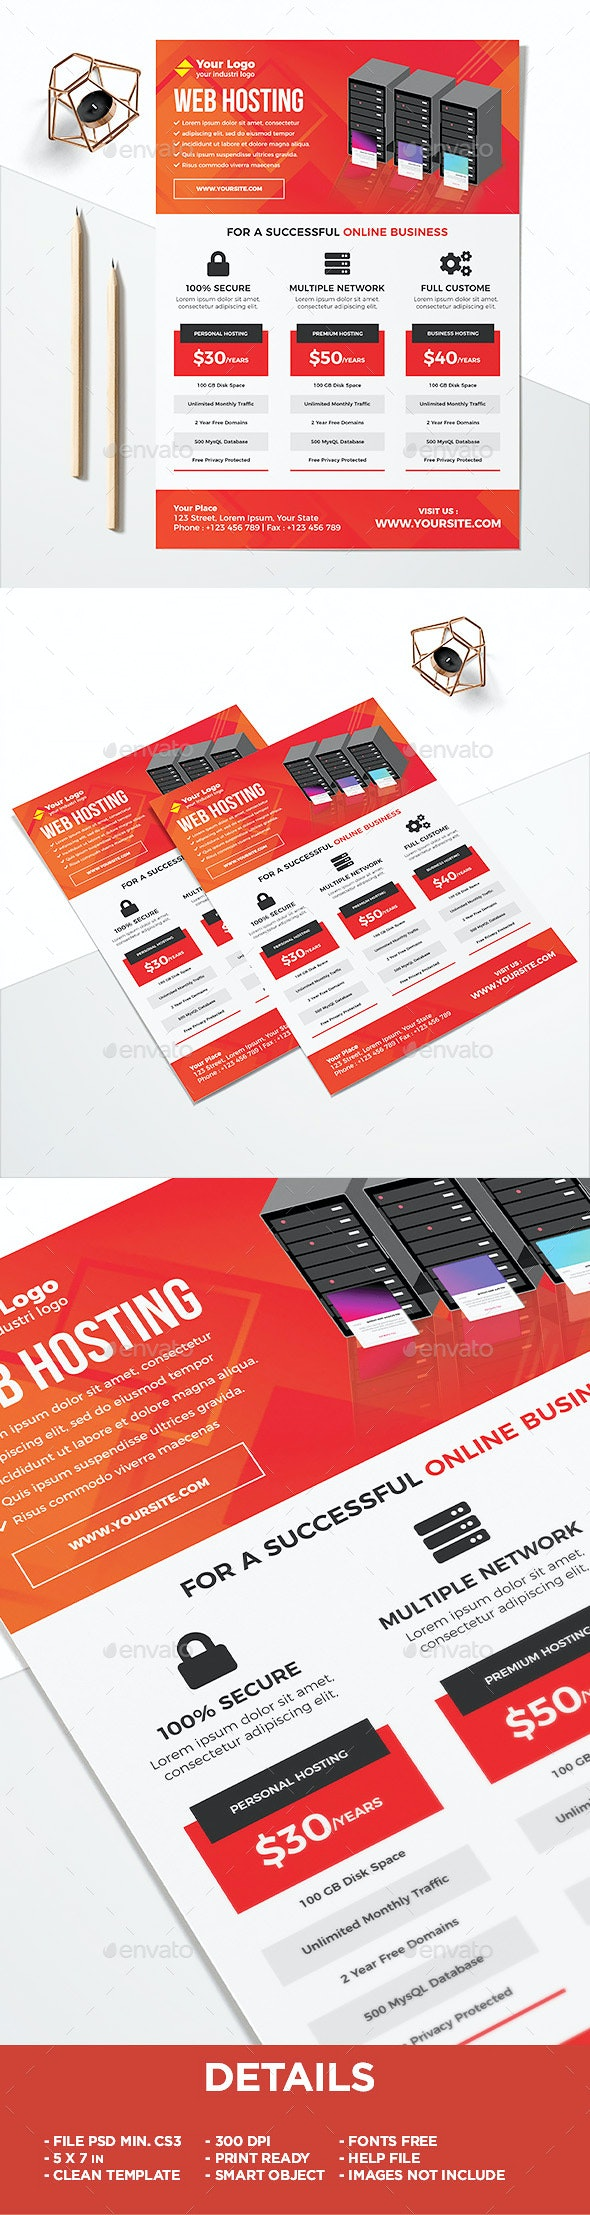 Professional Web Hosting Flyers - Corporate Flyers